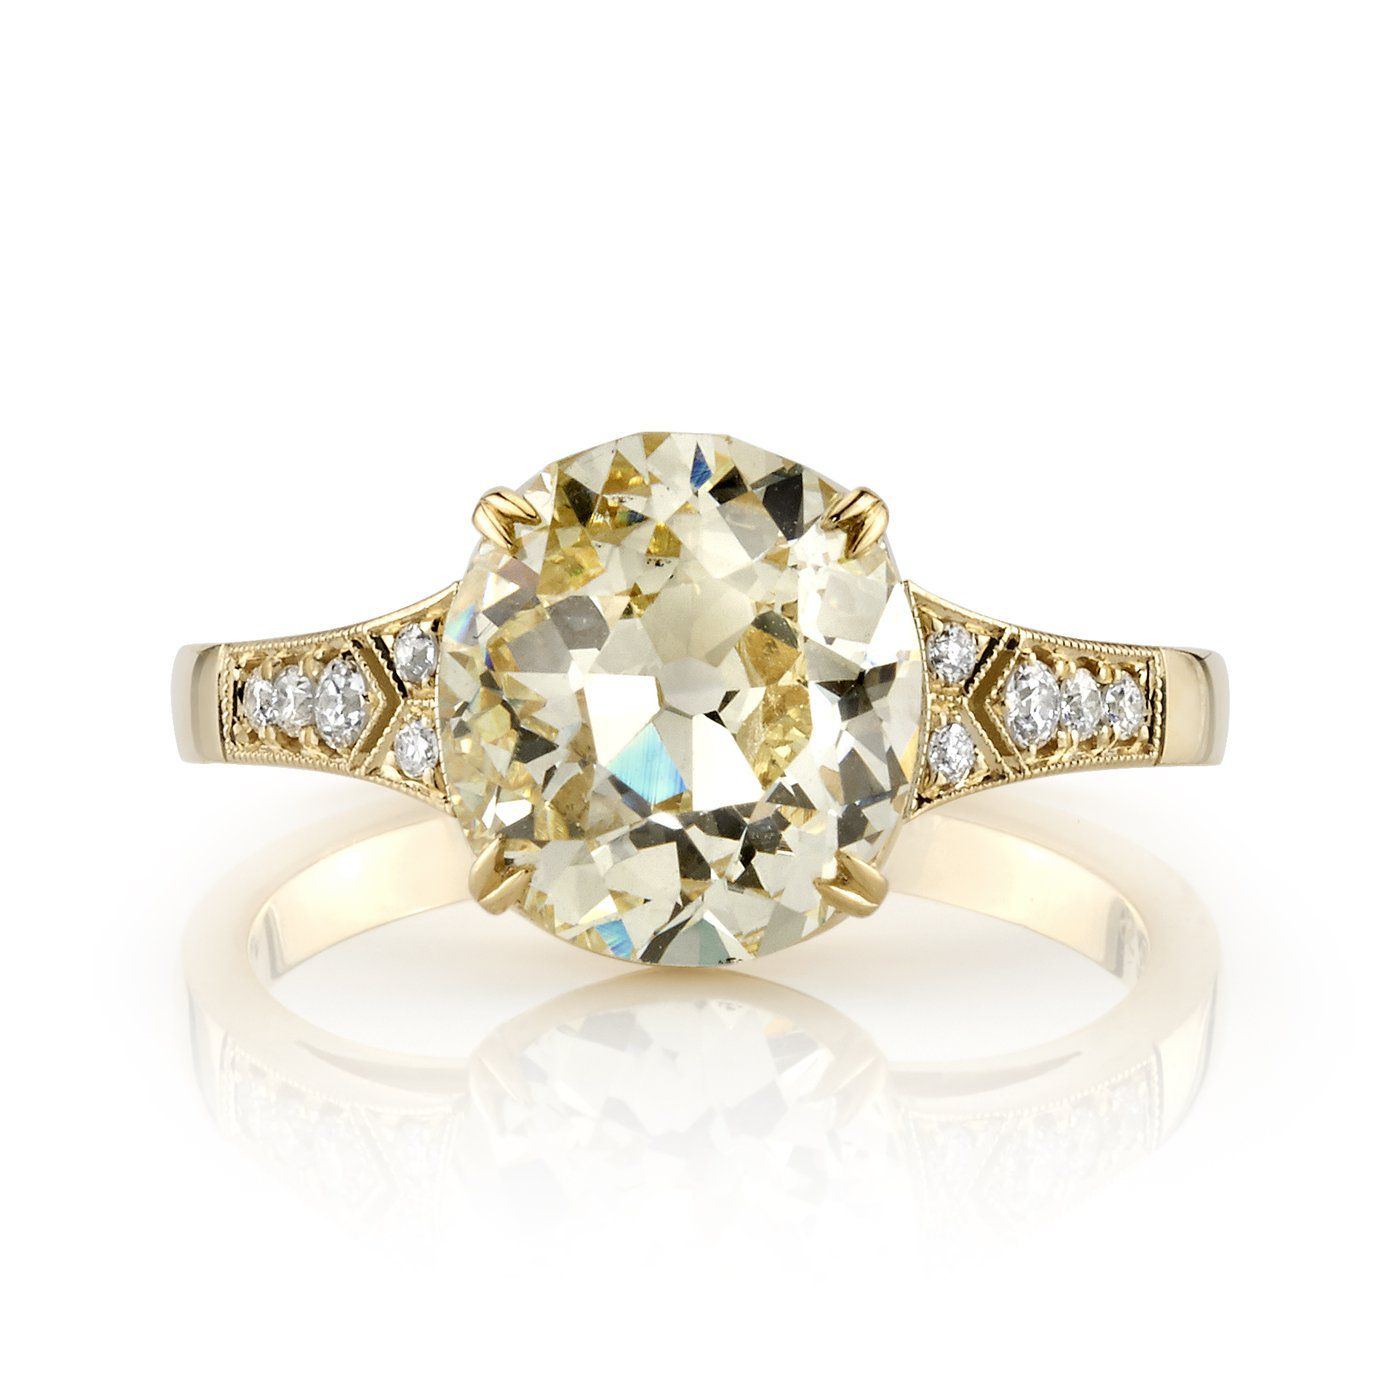 be0b0a95534a6 26 Yellow Diamond Engagement Rings That Are Anything But Boring